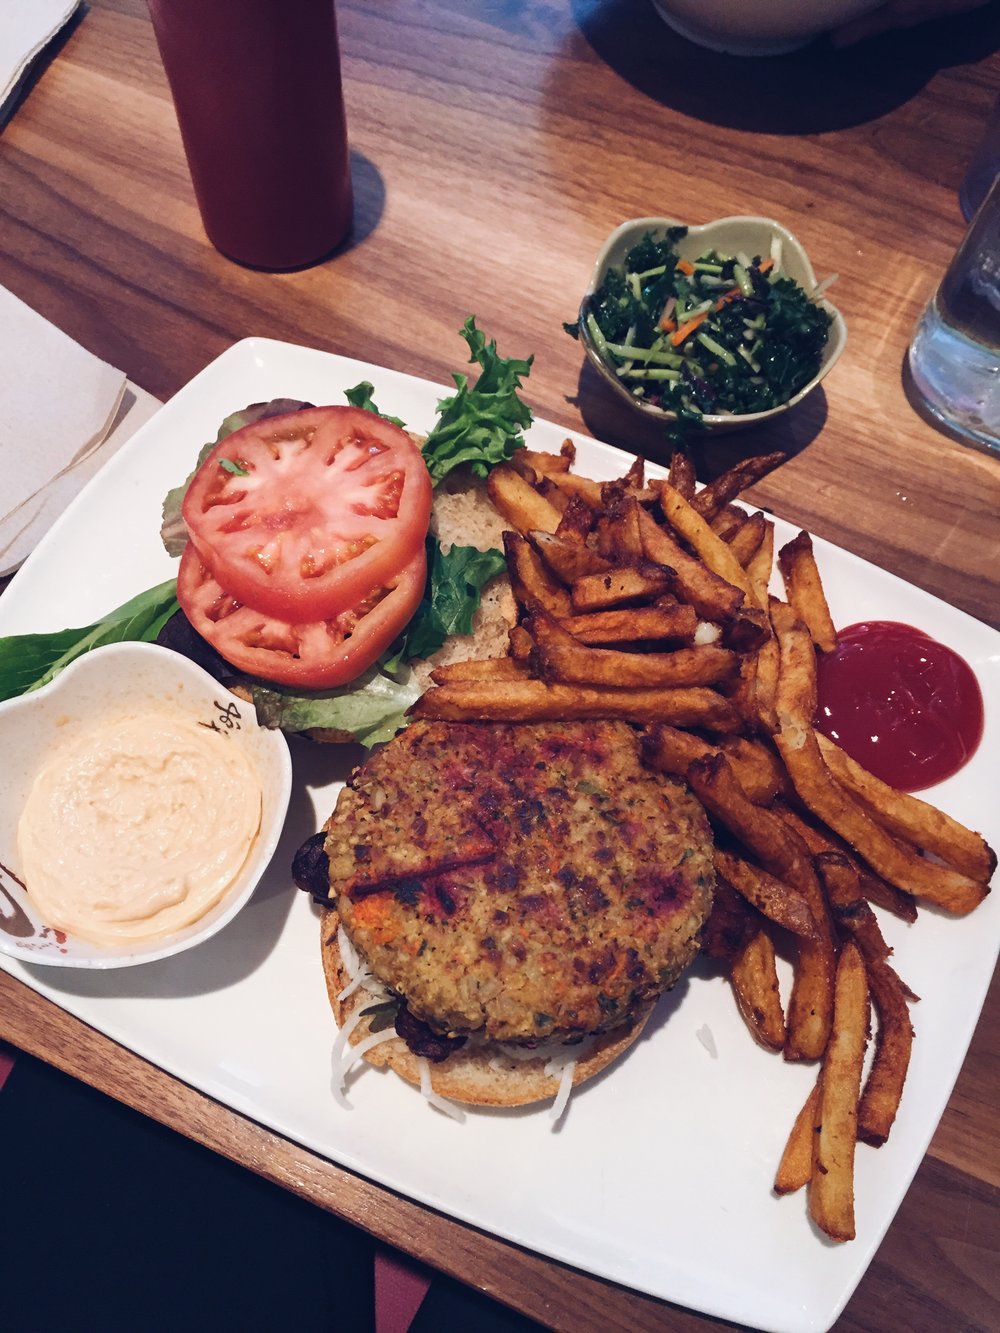 mediocre veggie burger and delicious fries